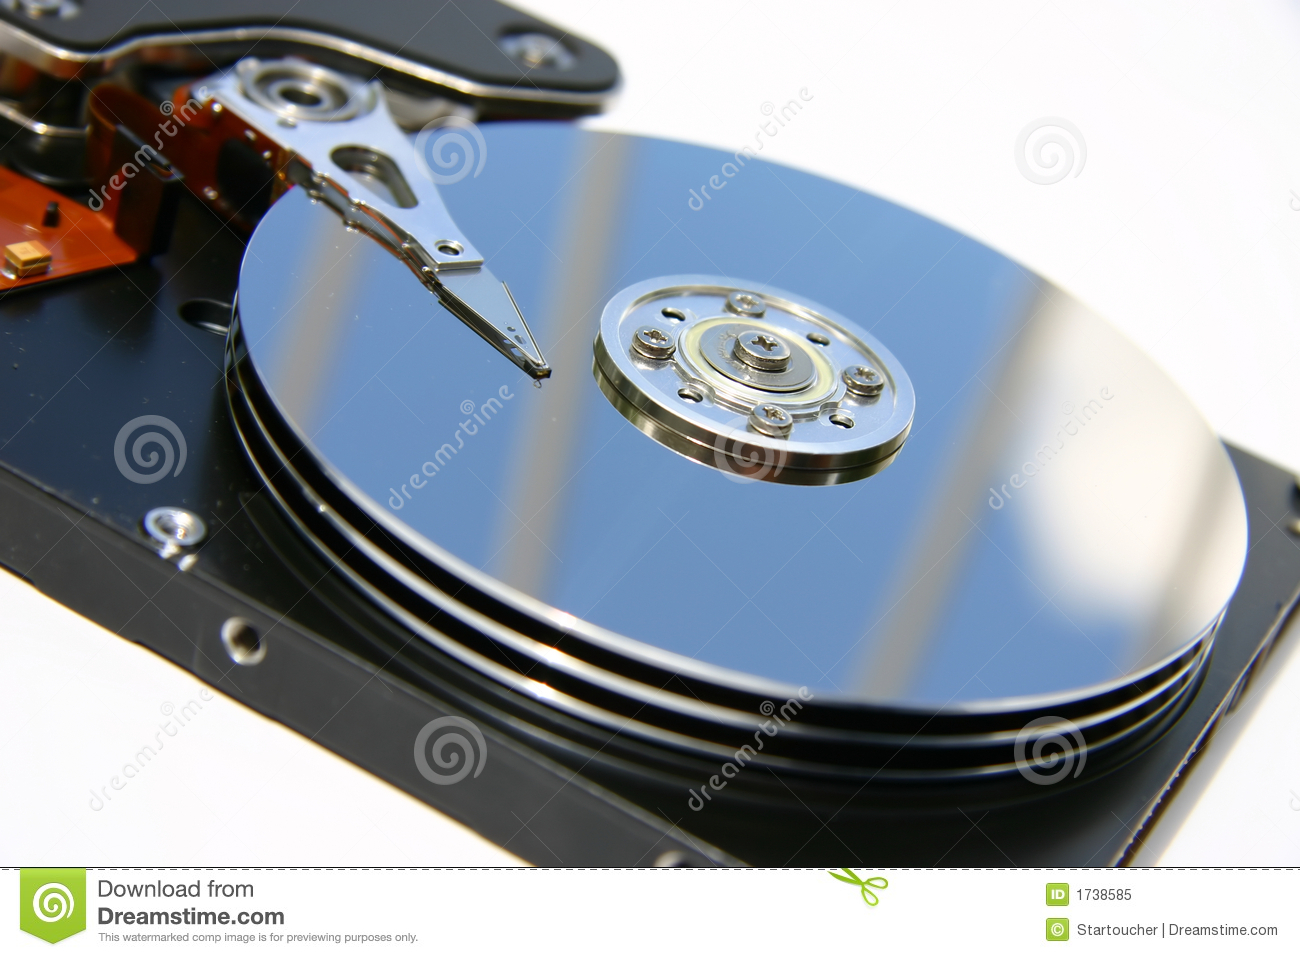 how to detect hard drive